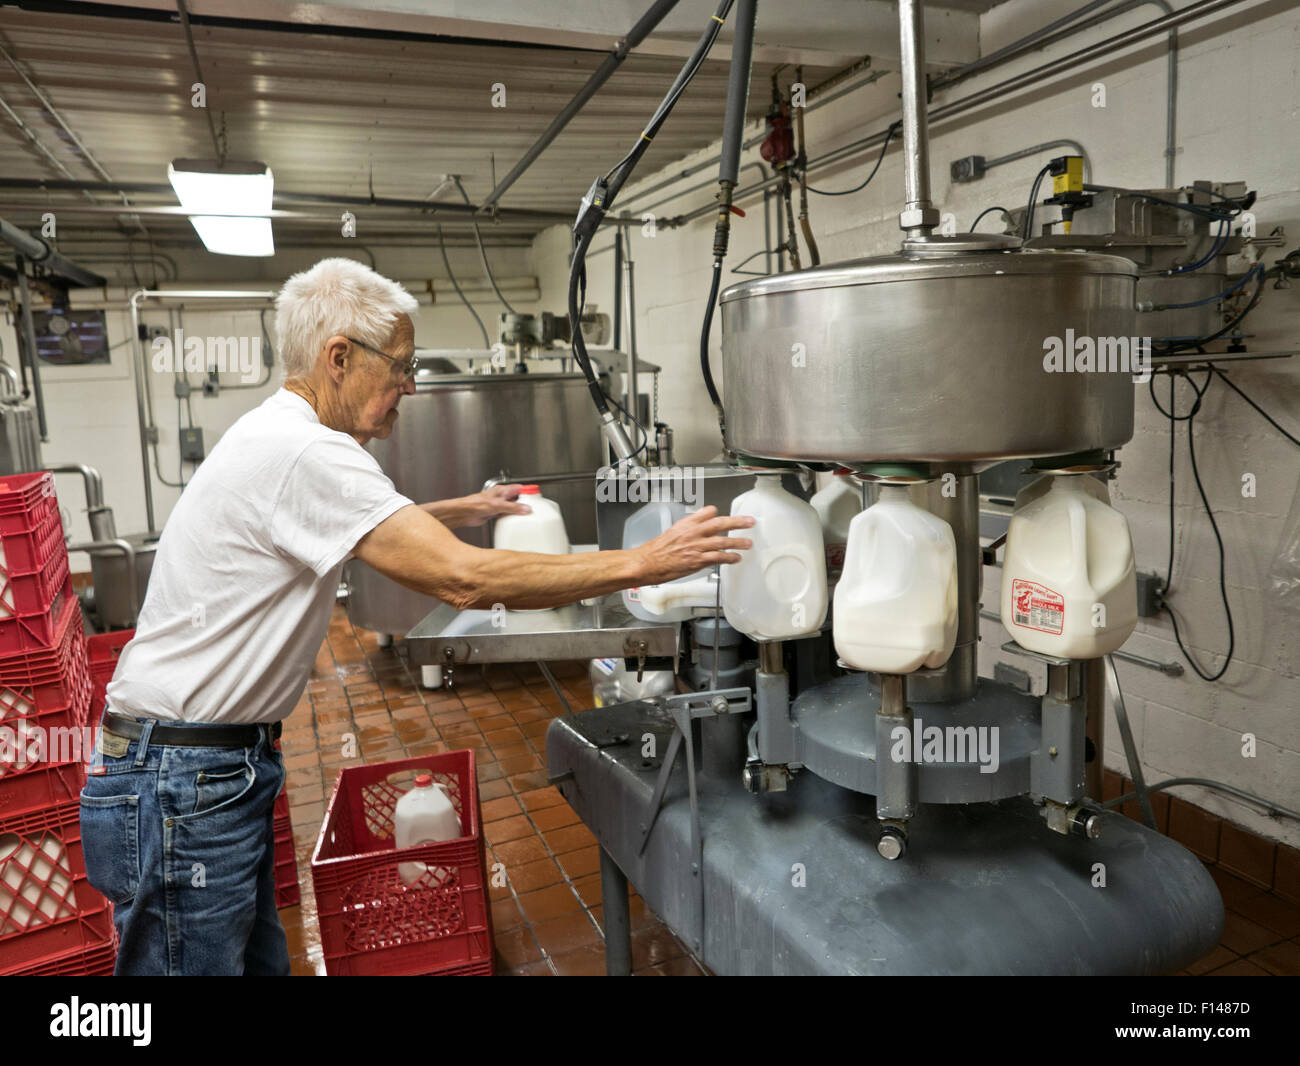 Dairy  operator filling one gallon bottles, pasteurized homogenized milk. - Stock Image